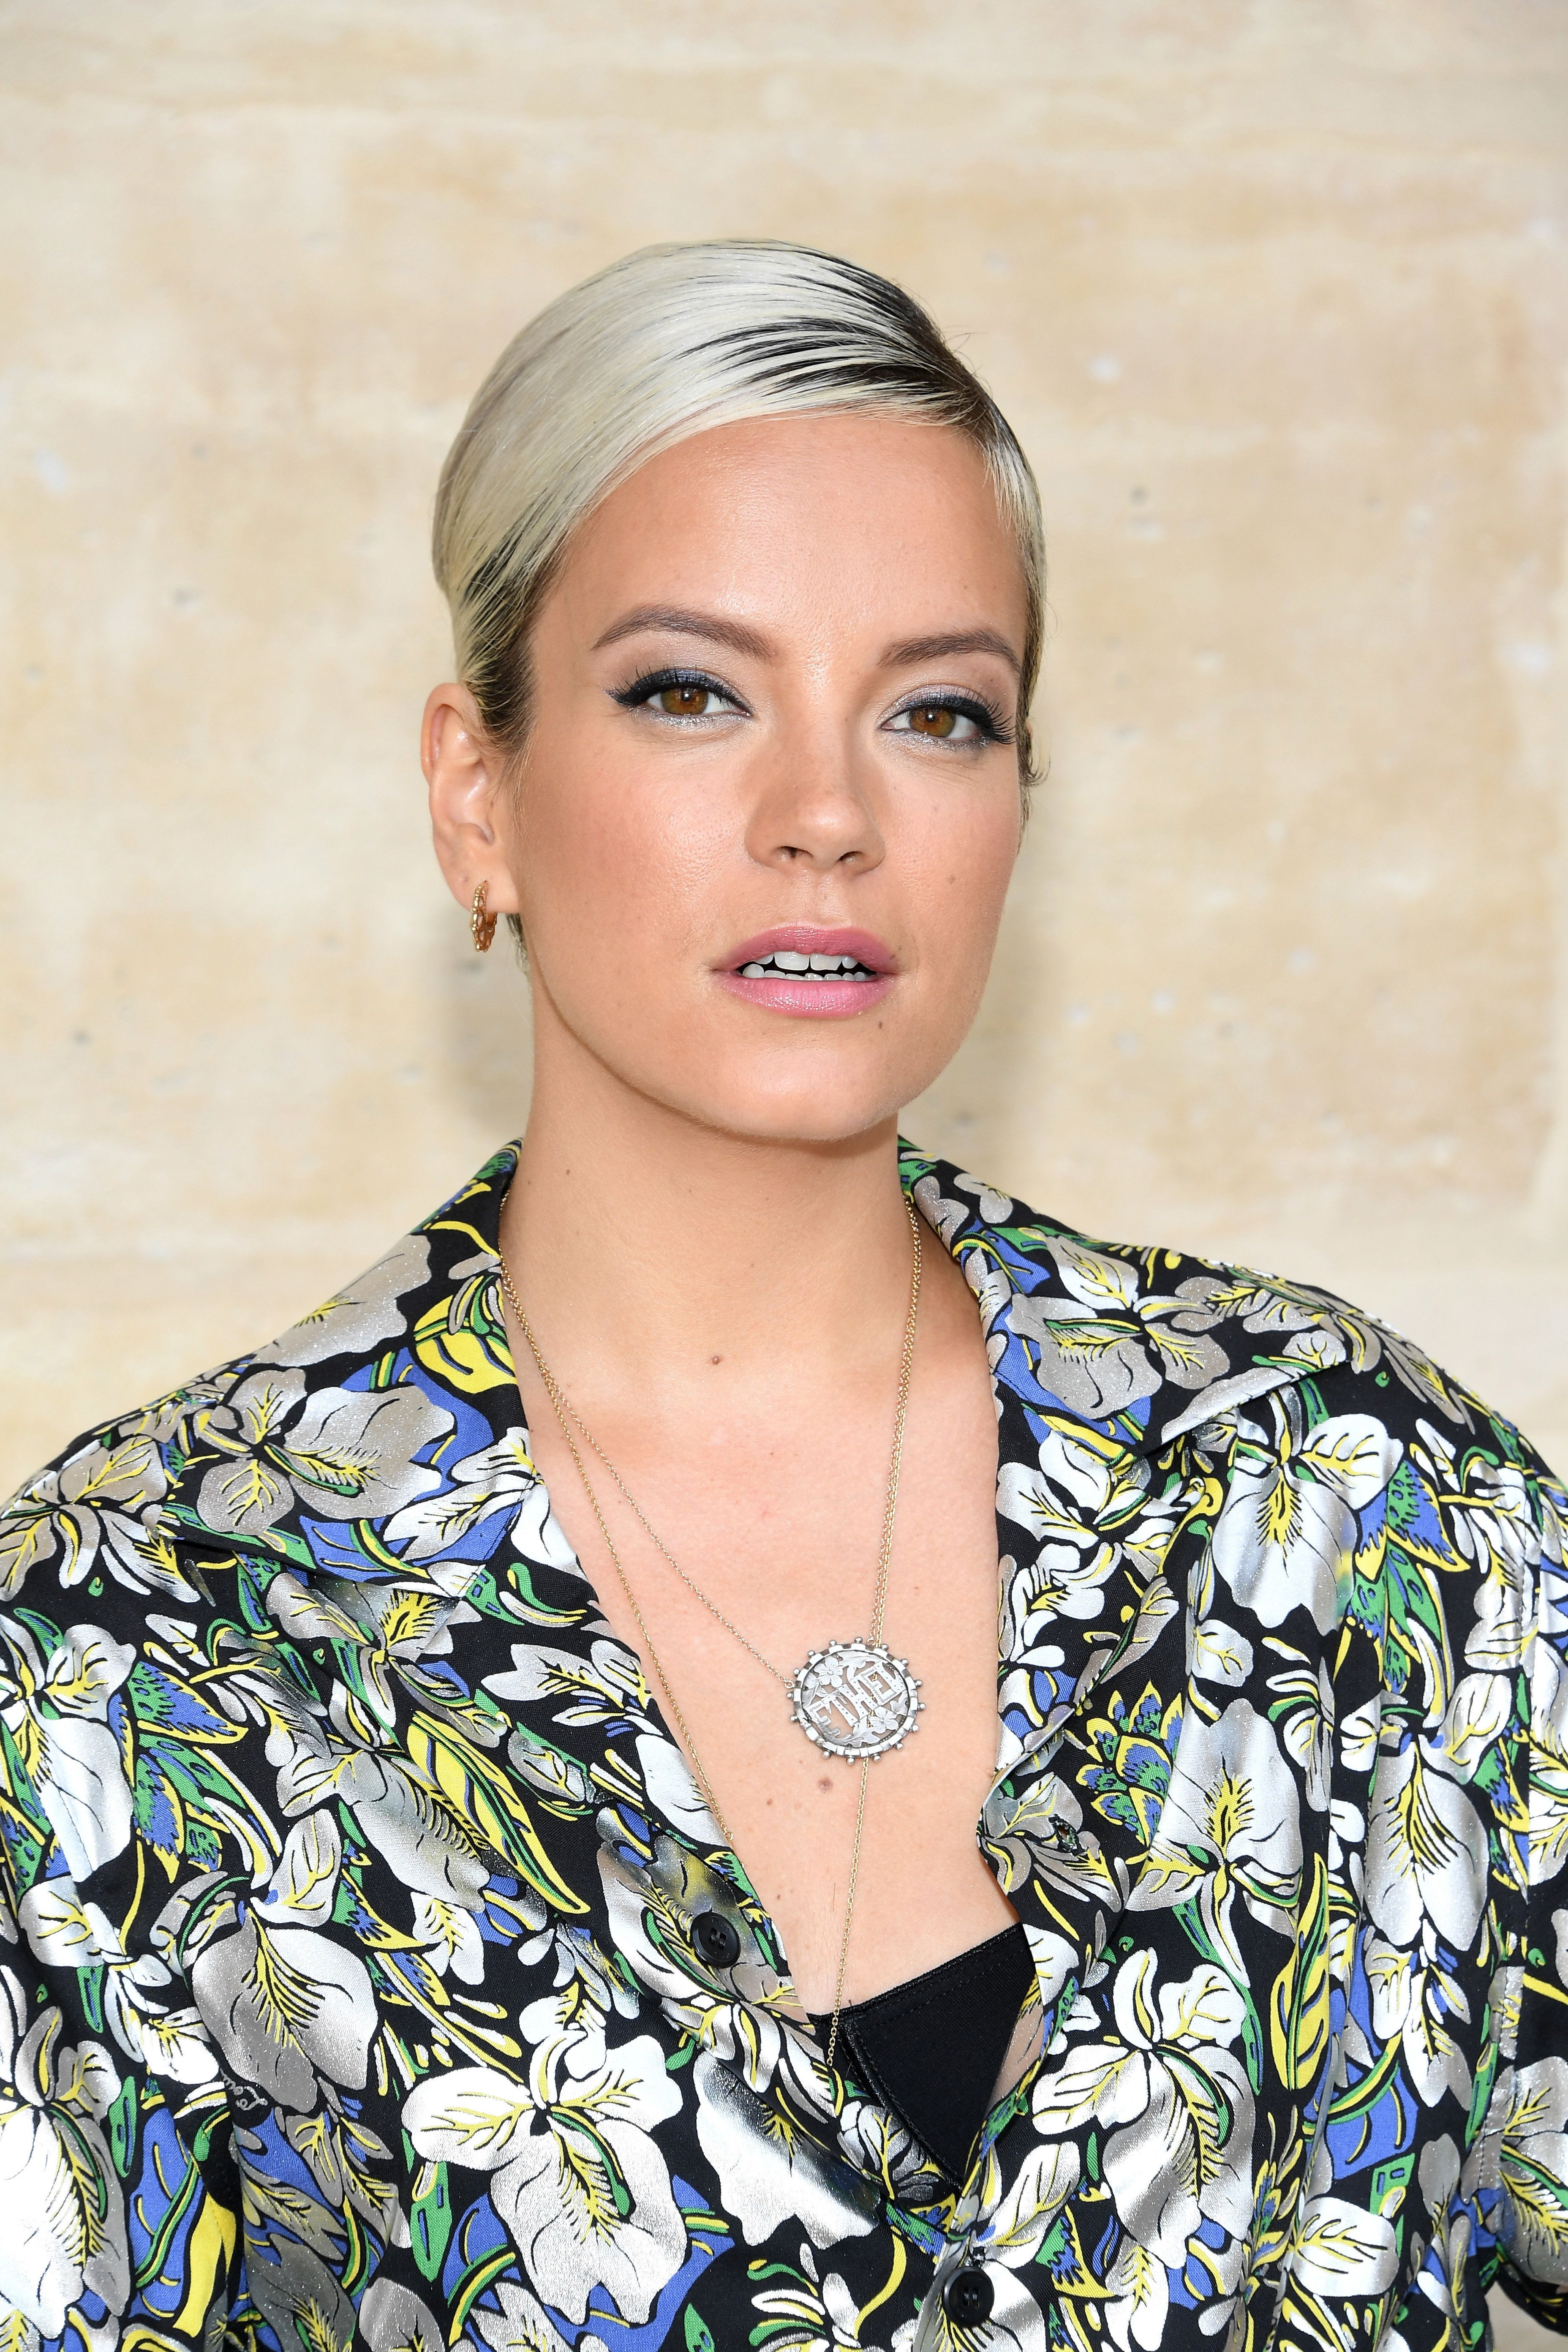 Lily Allen Responds To Gender Disparity In BBC Pay List: 'Women Are Better At Everything Than Men'